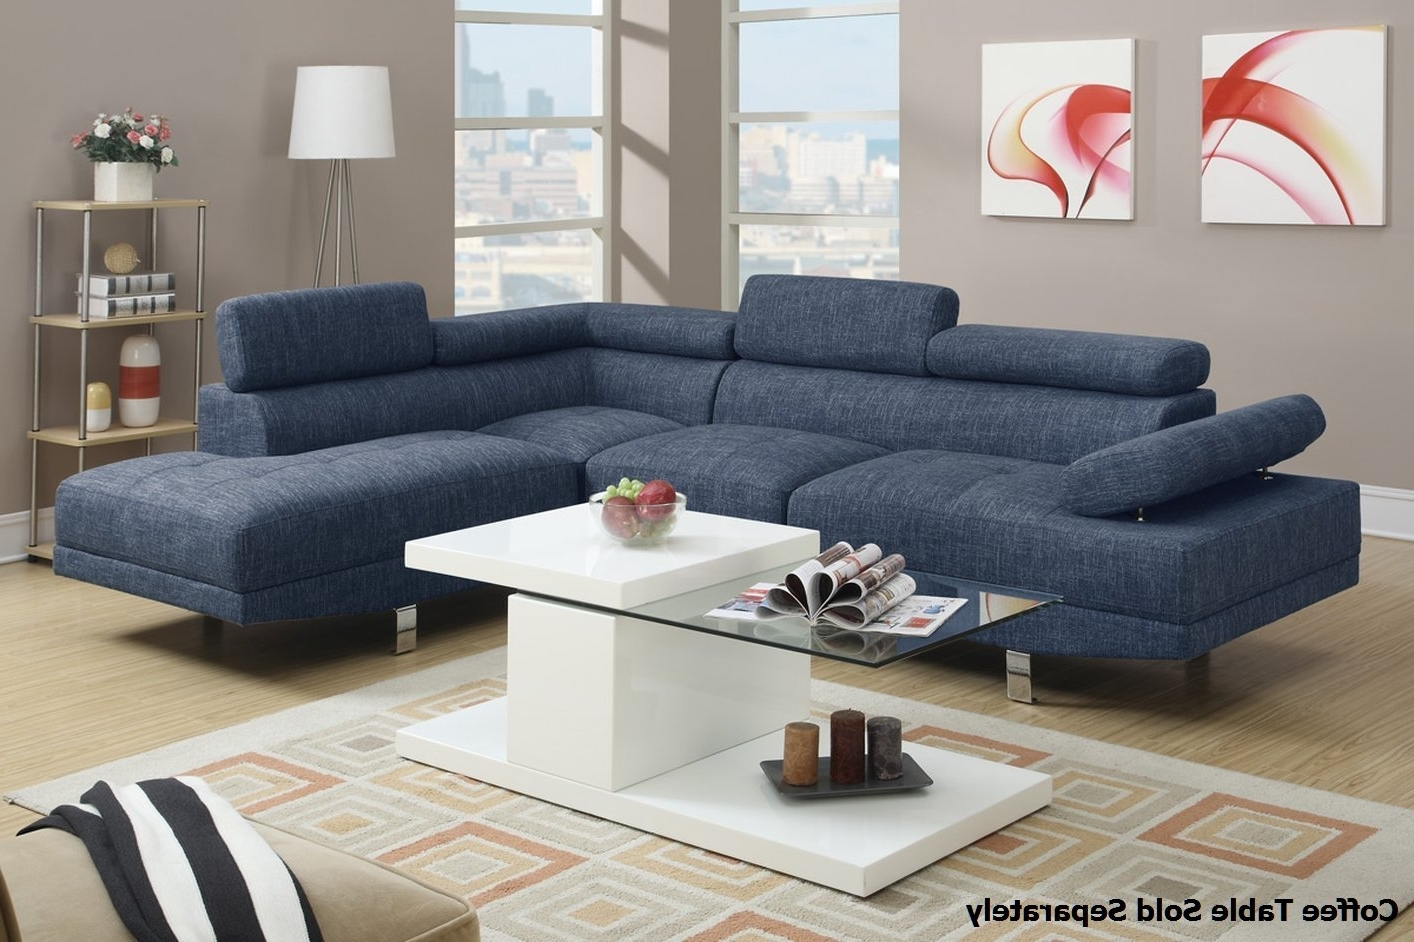 Favorite Sofas Centerectionalofa Blue Velvet Denim Navy Houston Texas Regarding Houston Sectional Sofas (View 6 of 15)